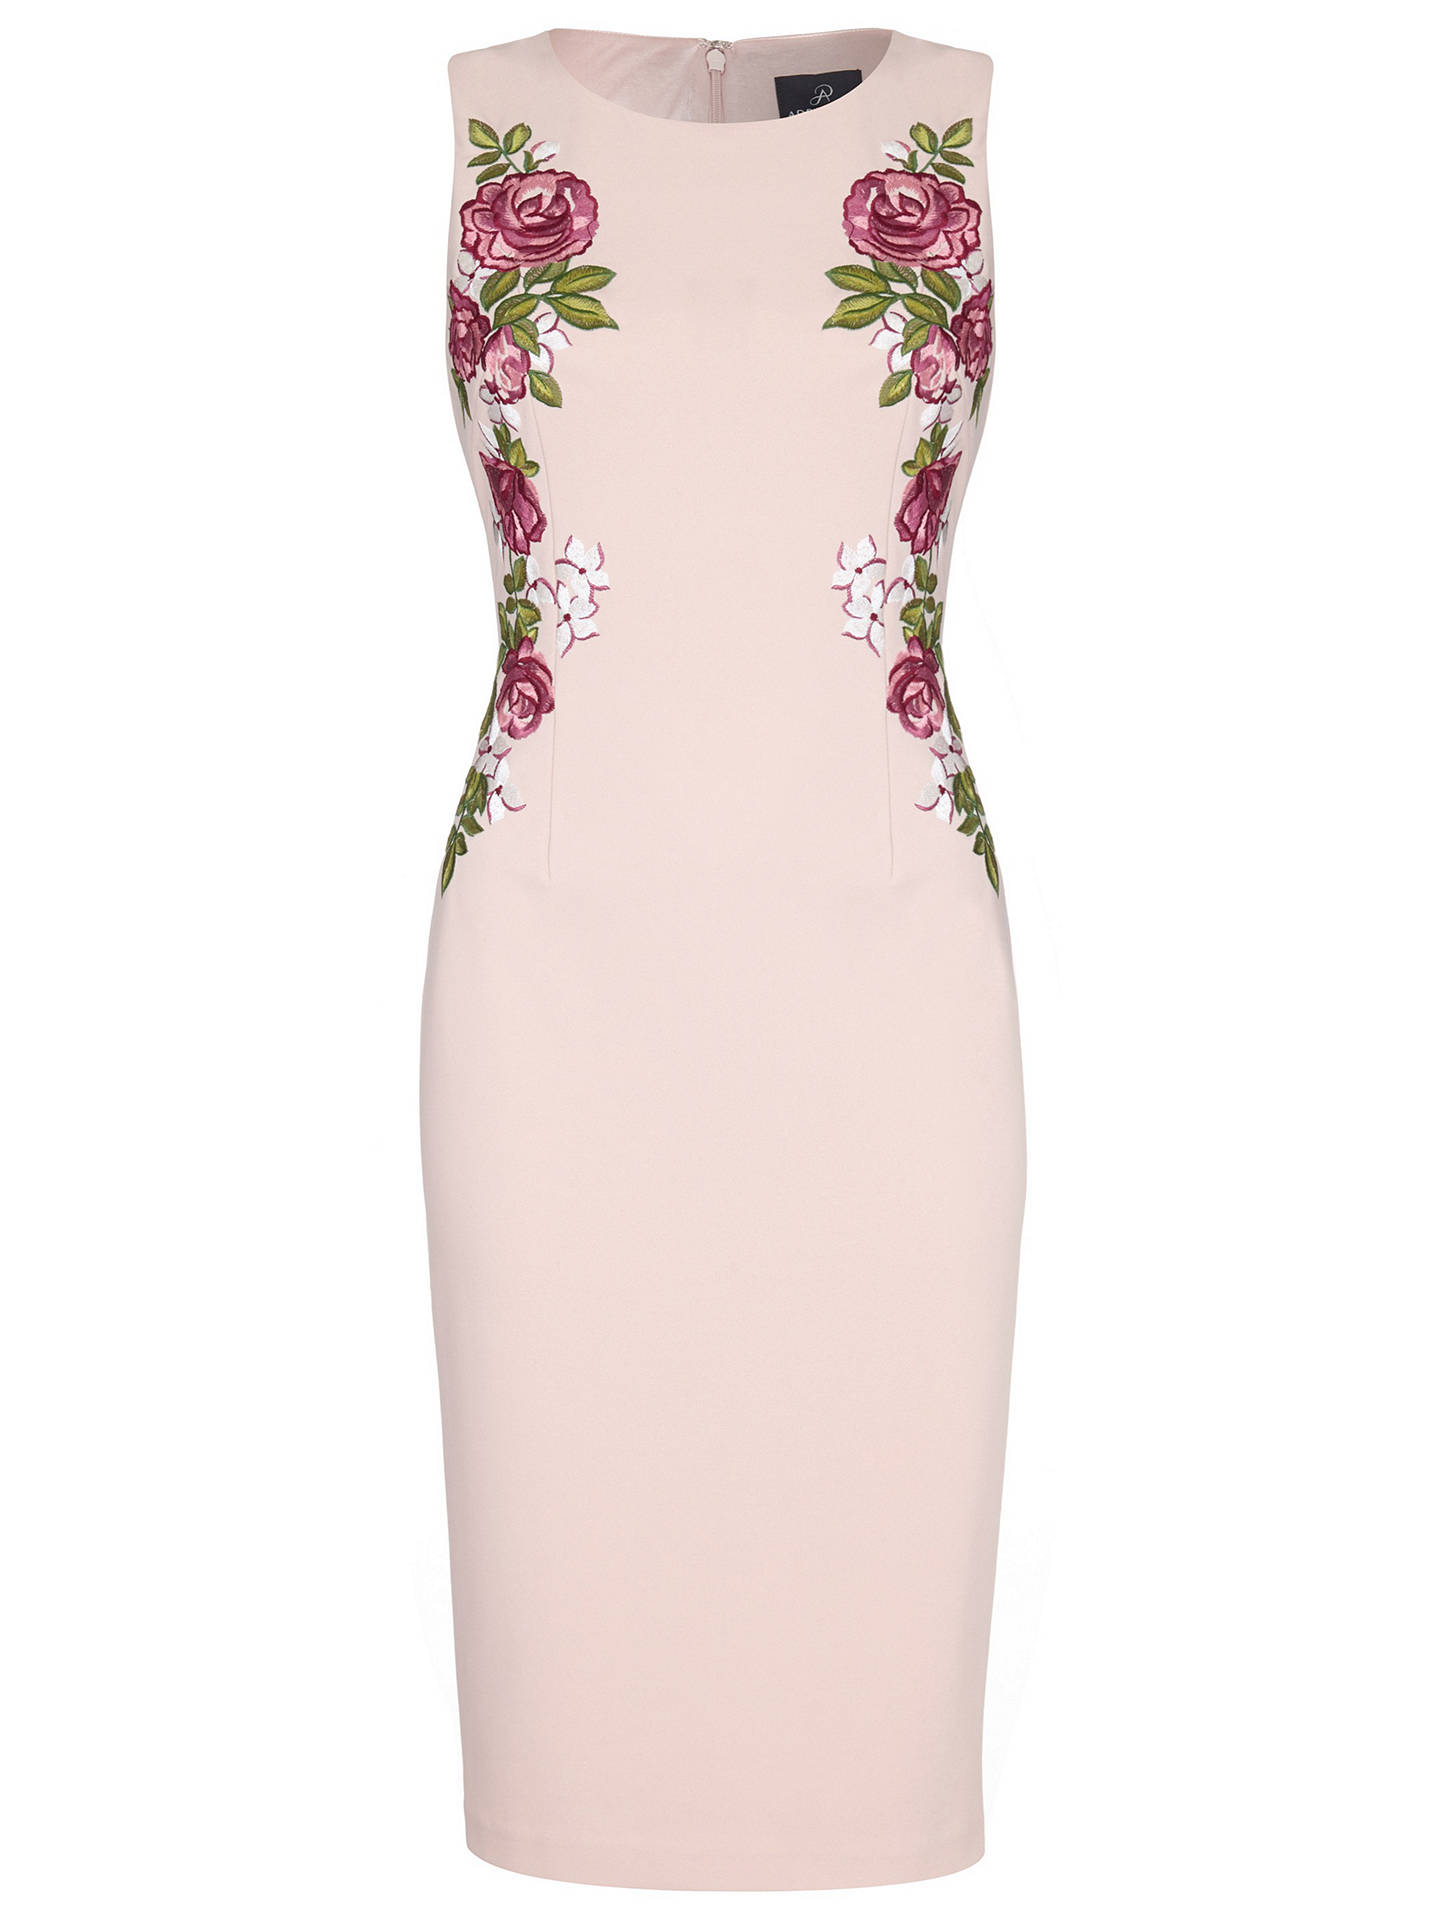 BuyAdrianna Papell Knit Crepe Embroidered Dress, Blush, 16 Online at johnlewis.com